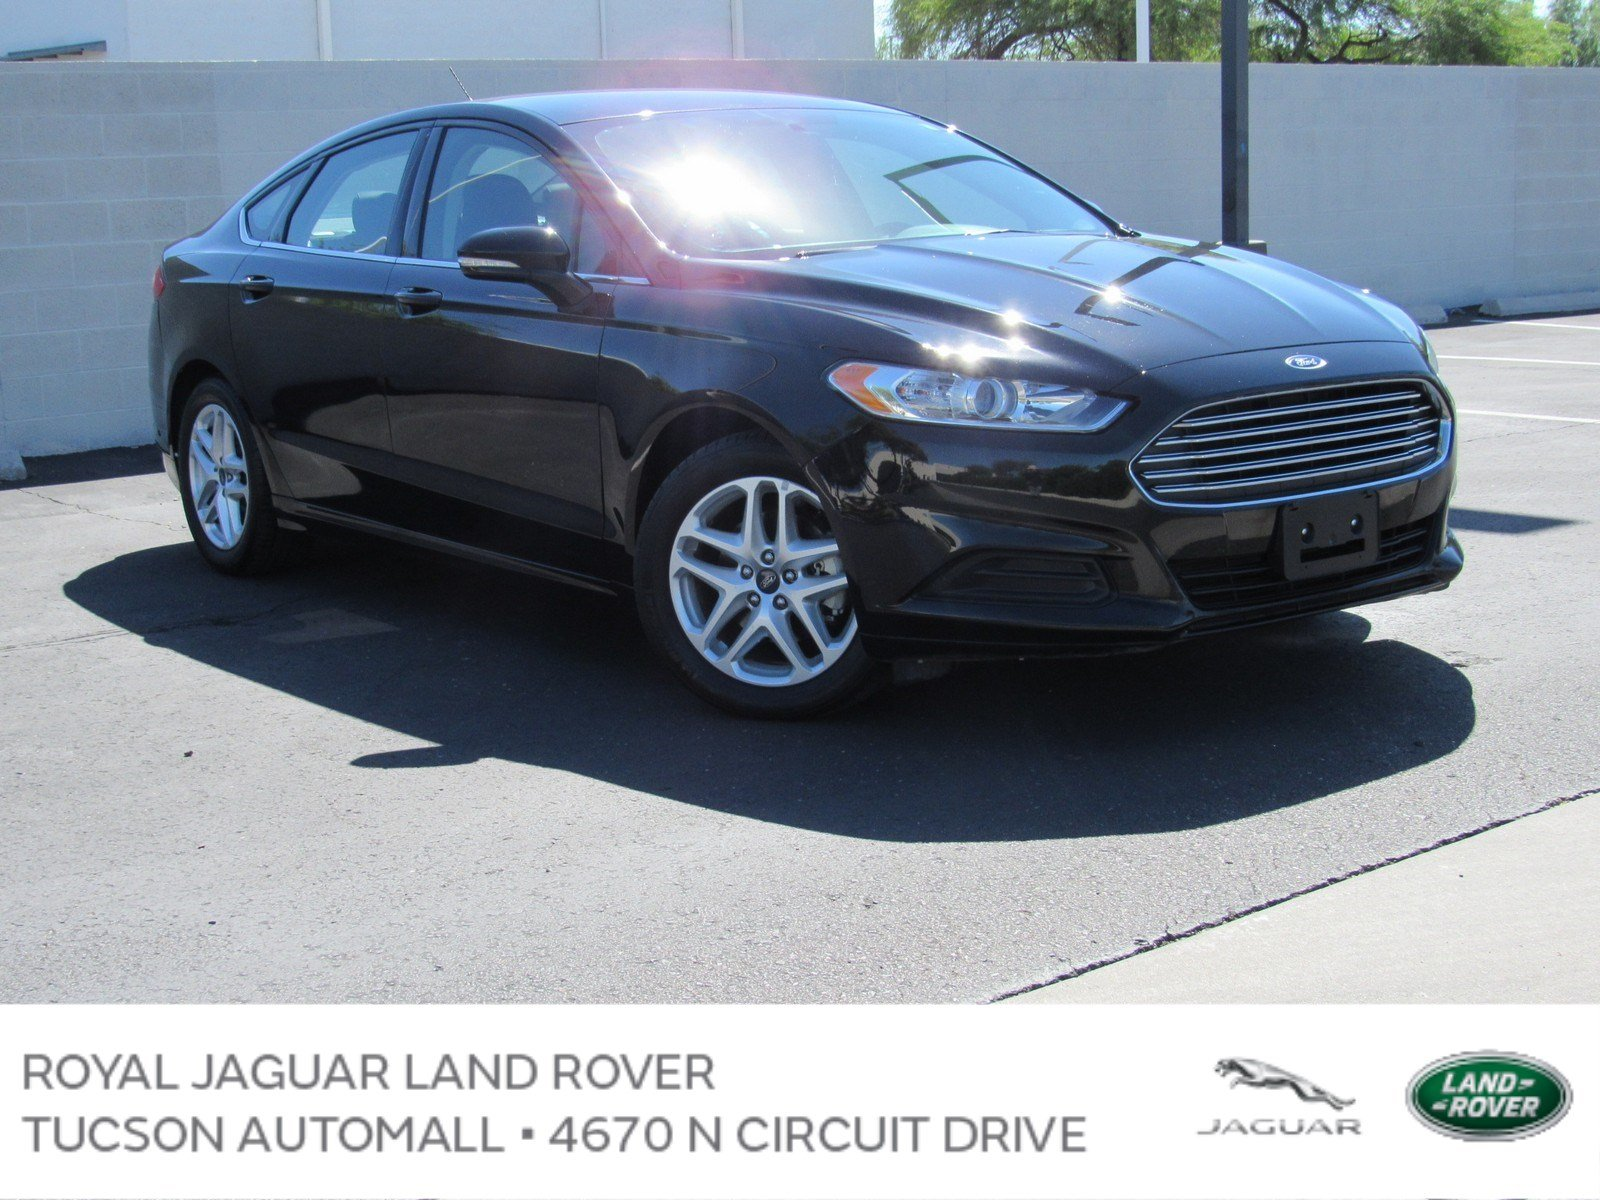 Pre Owned 2016 Ford Fusion SE Sedan in Tucson PD